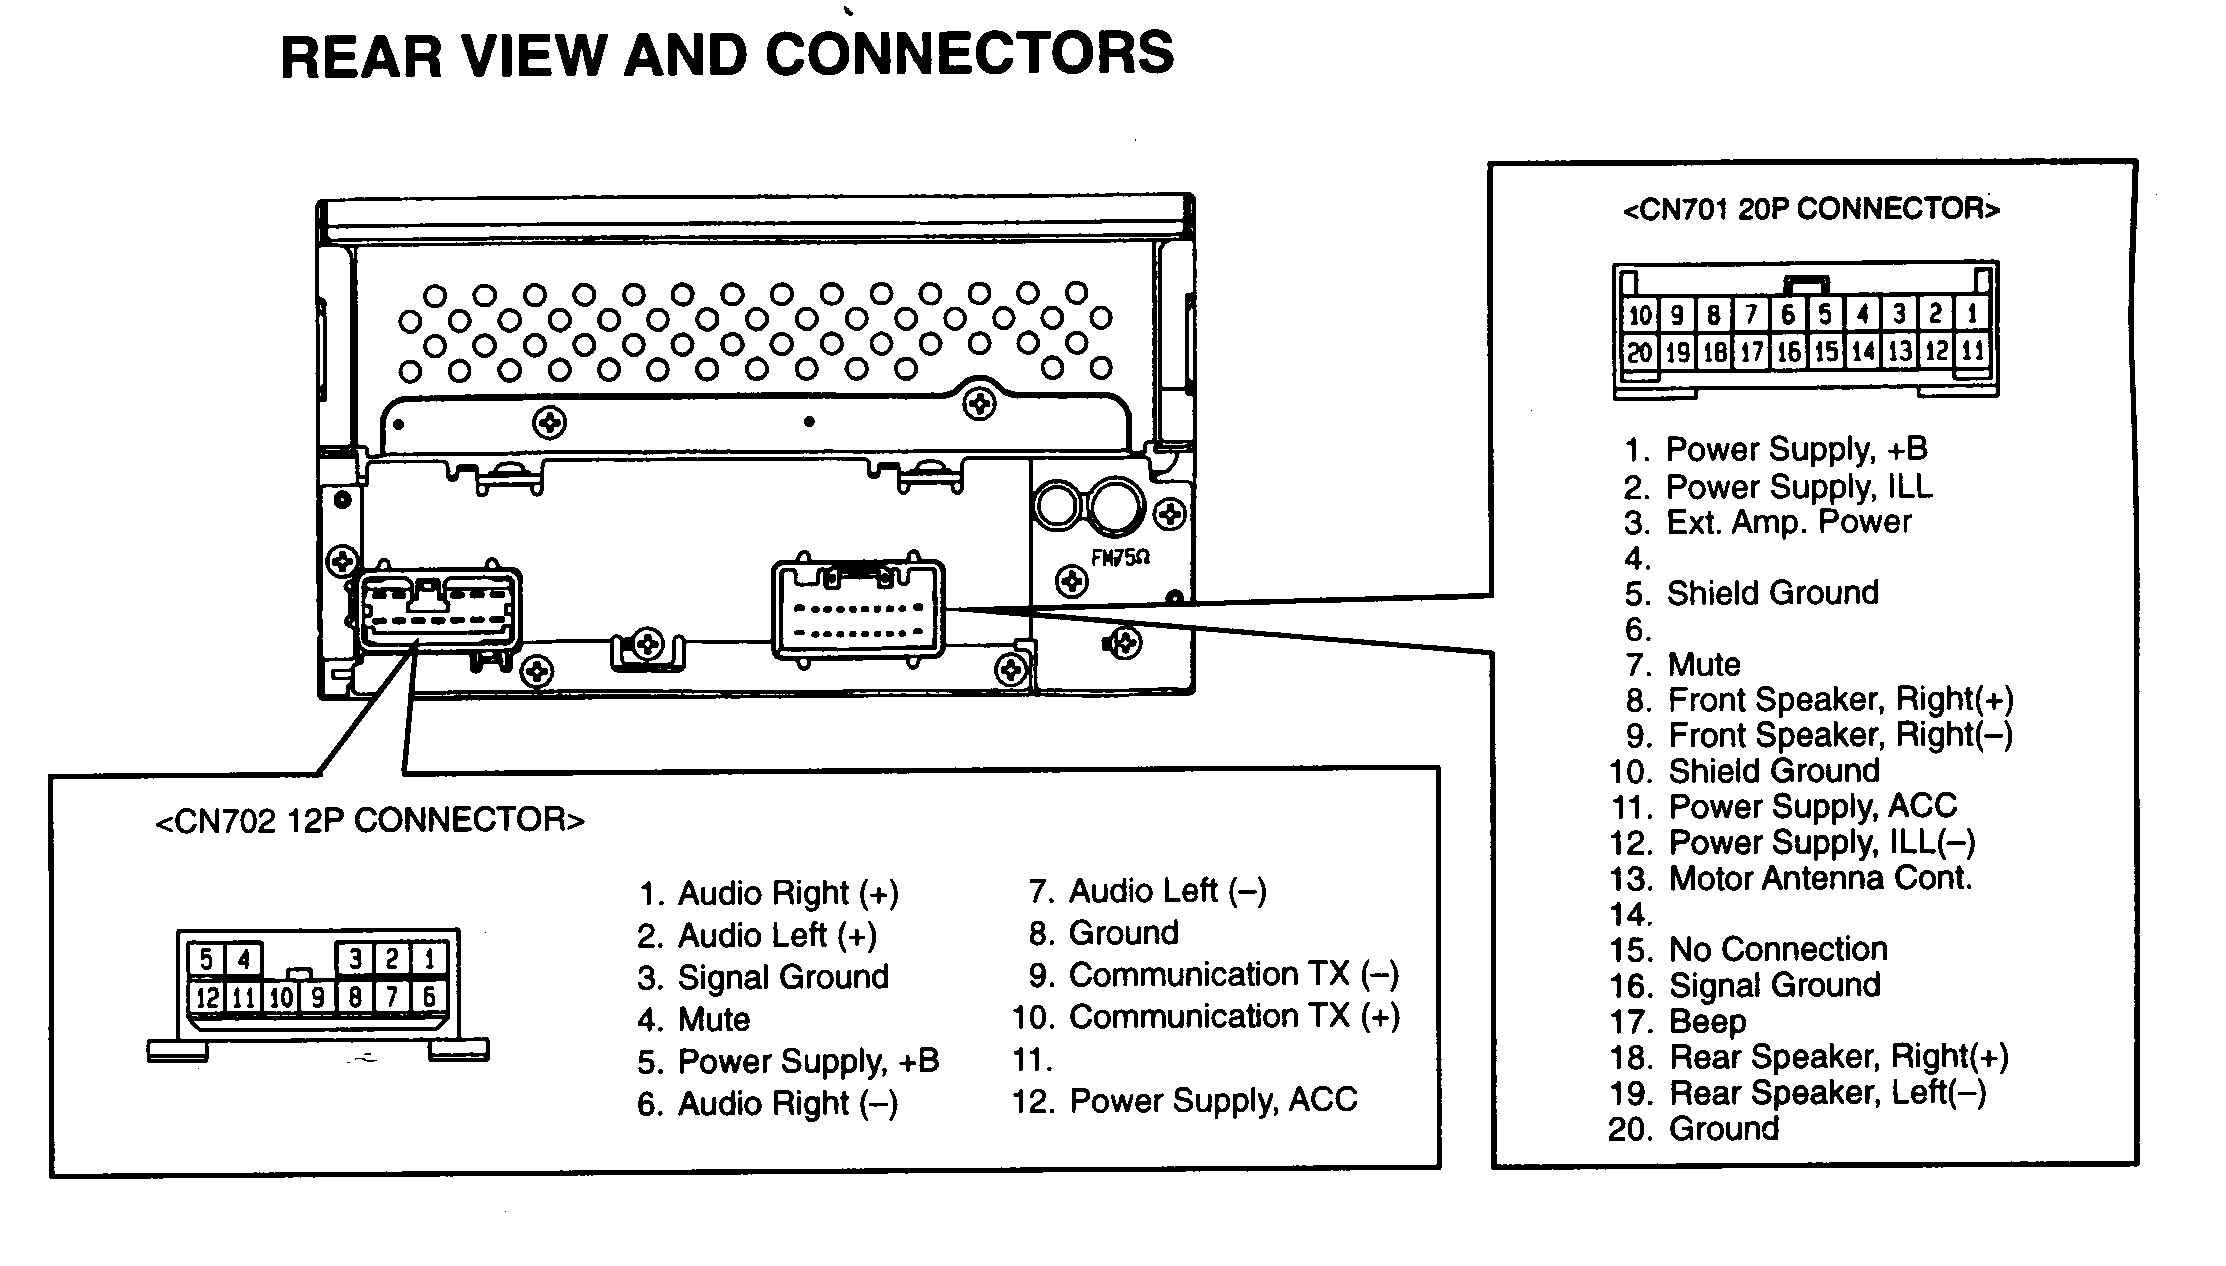 [DIAGRAM_4FR]  CF_0277] Car Audio Head Unit Wiring Diagram Download Diagram | 96 Miata Radio Wiring |  | Terst Hila Itis Ponol Rdona Skat Scata Mohammedshrine Librar Wiring 101